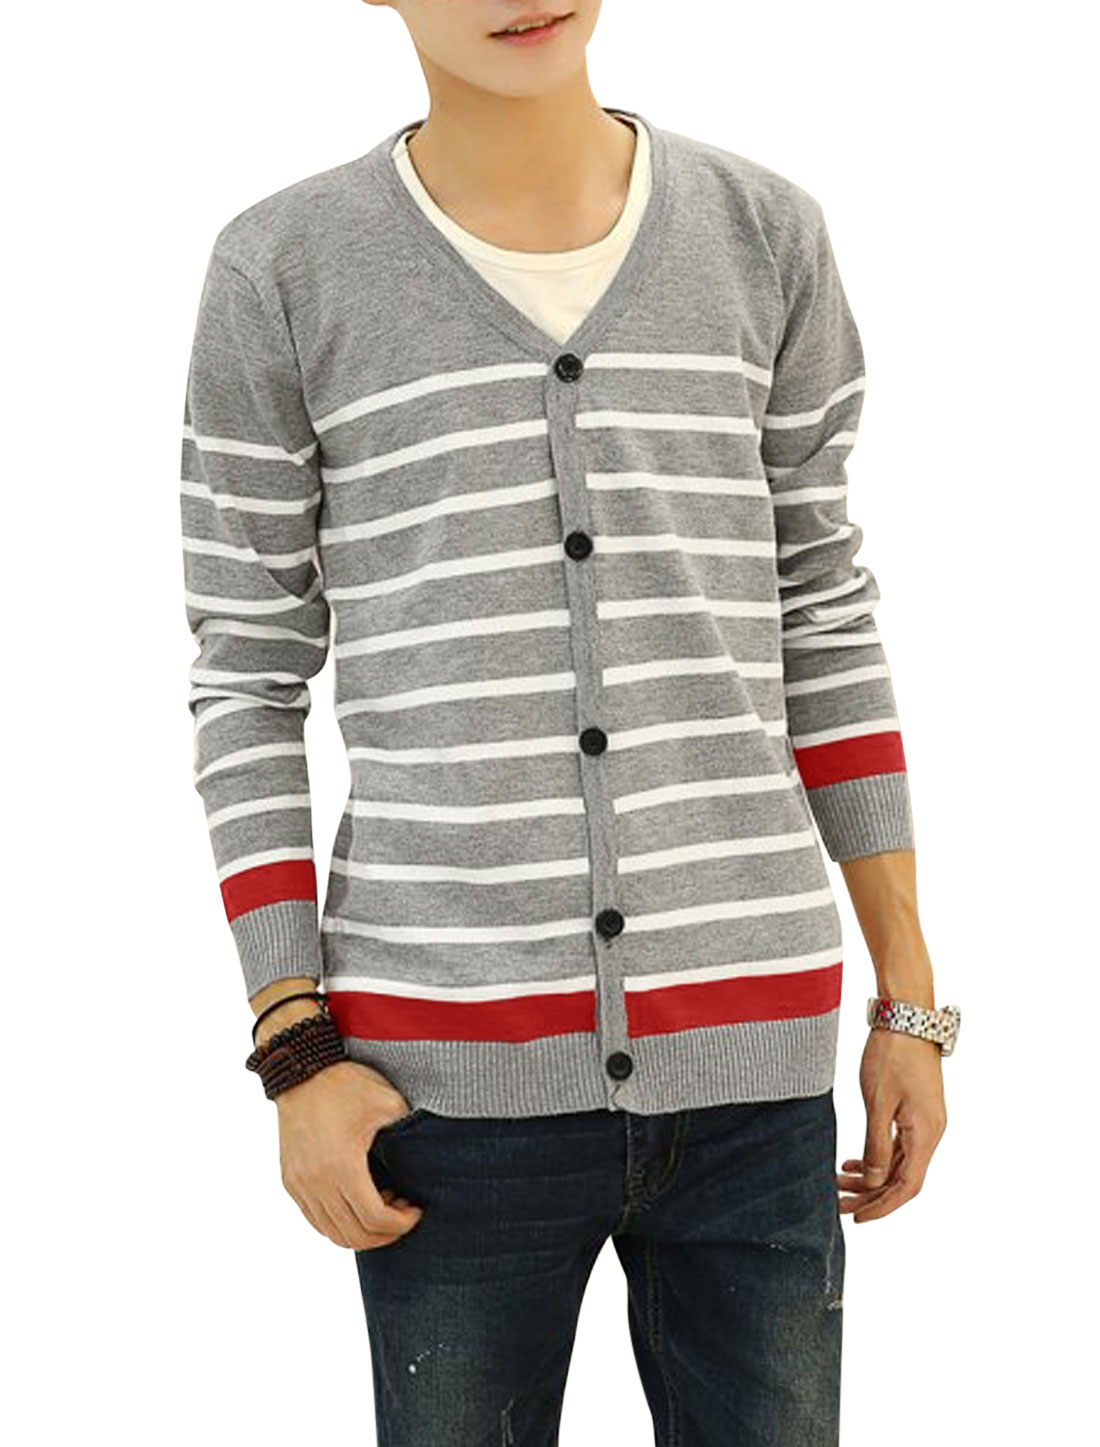 V Neck Horizontal Stripes Casual Knit Cardigan for Men Light Gray S